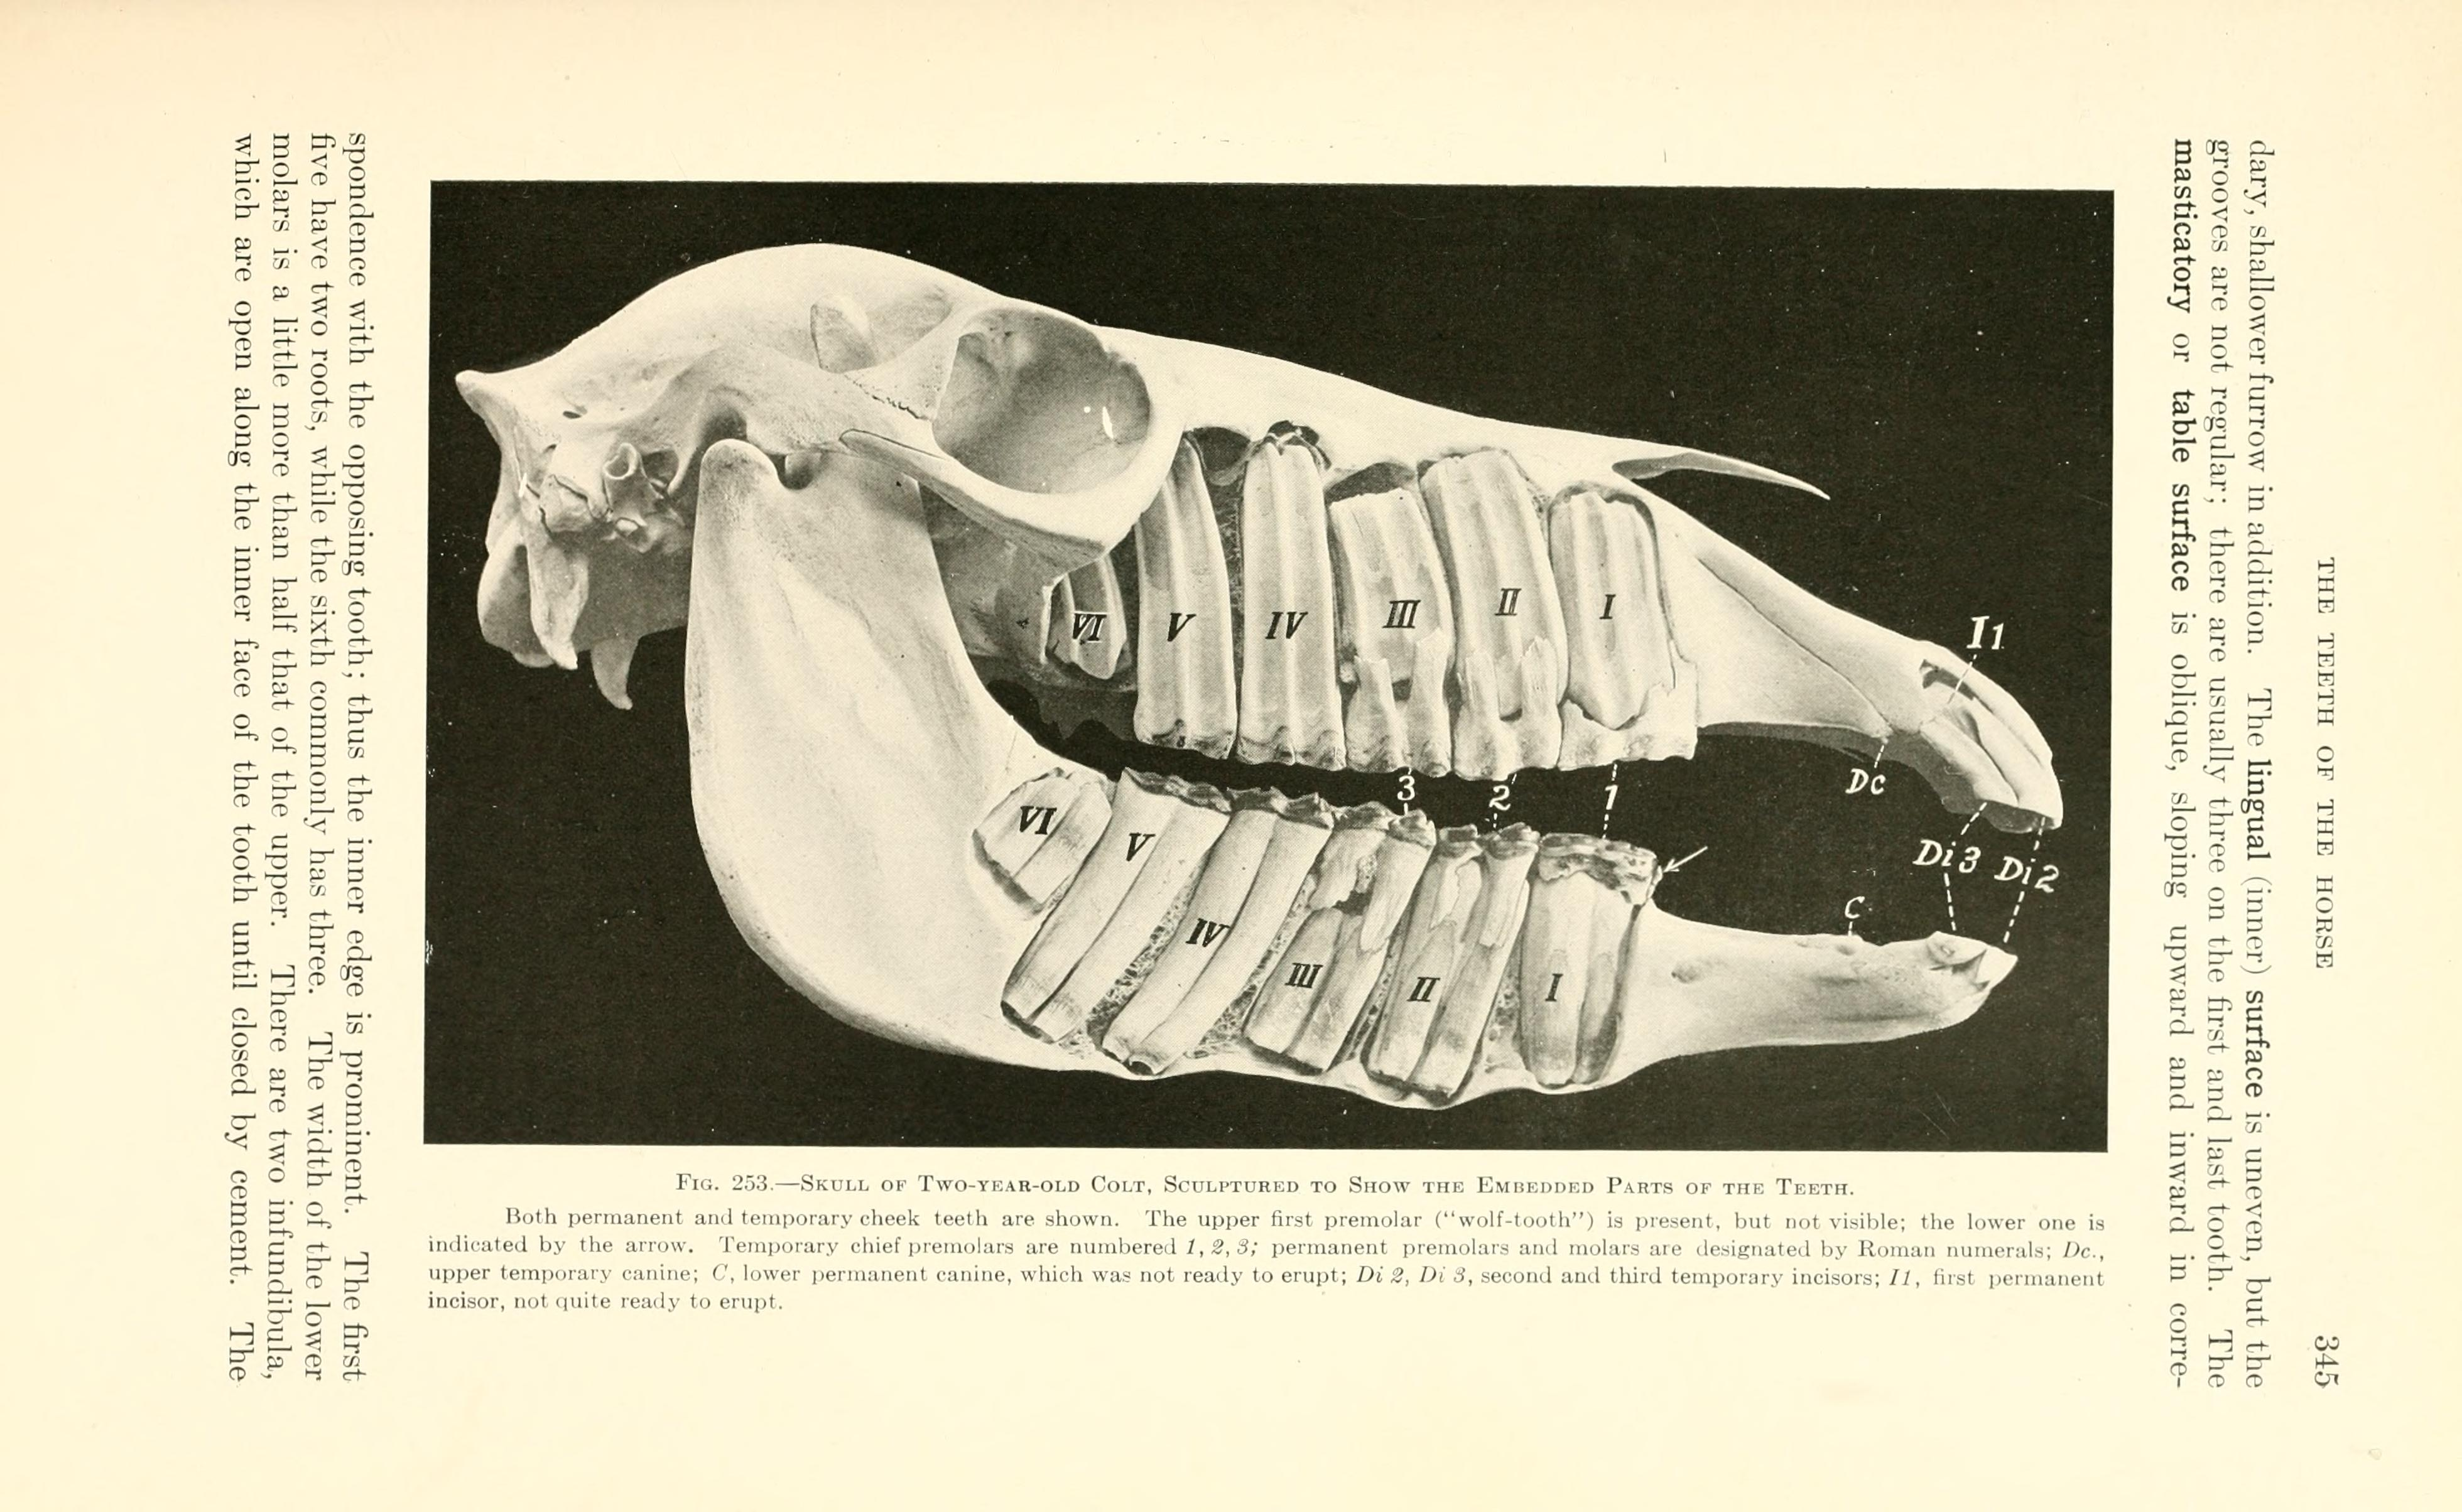 Filea Text Book Of Veterinary Anatomy Page 345 Bhl18587469g